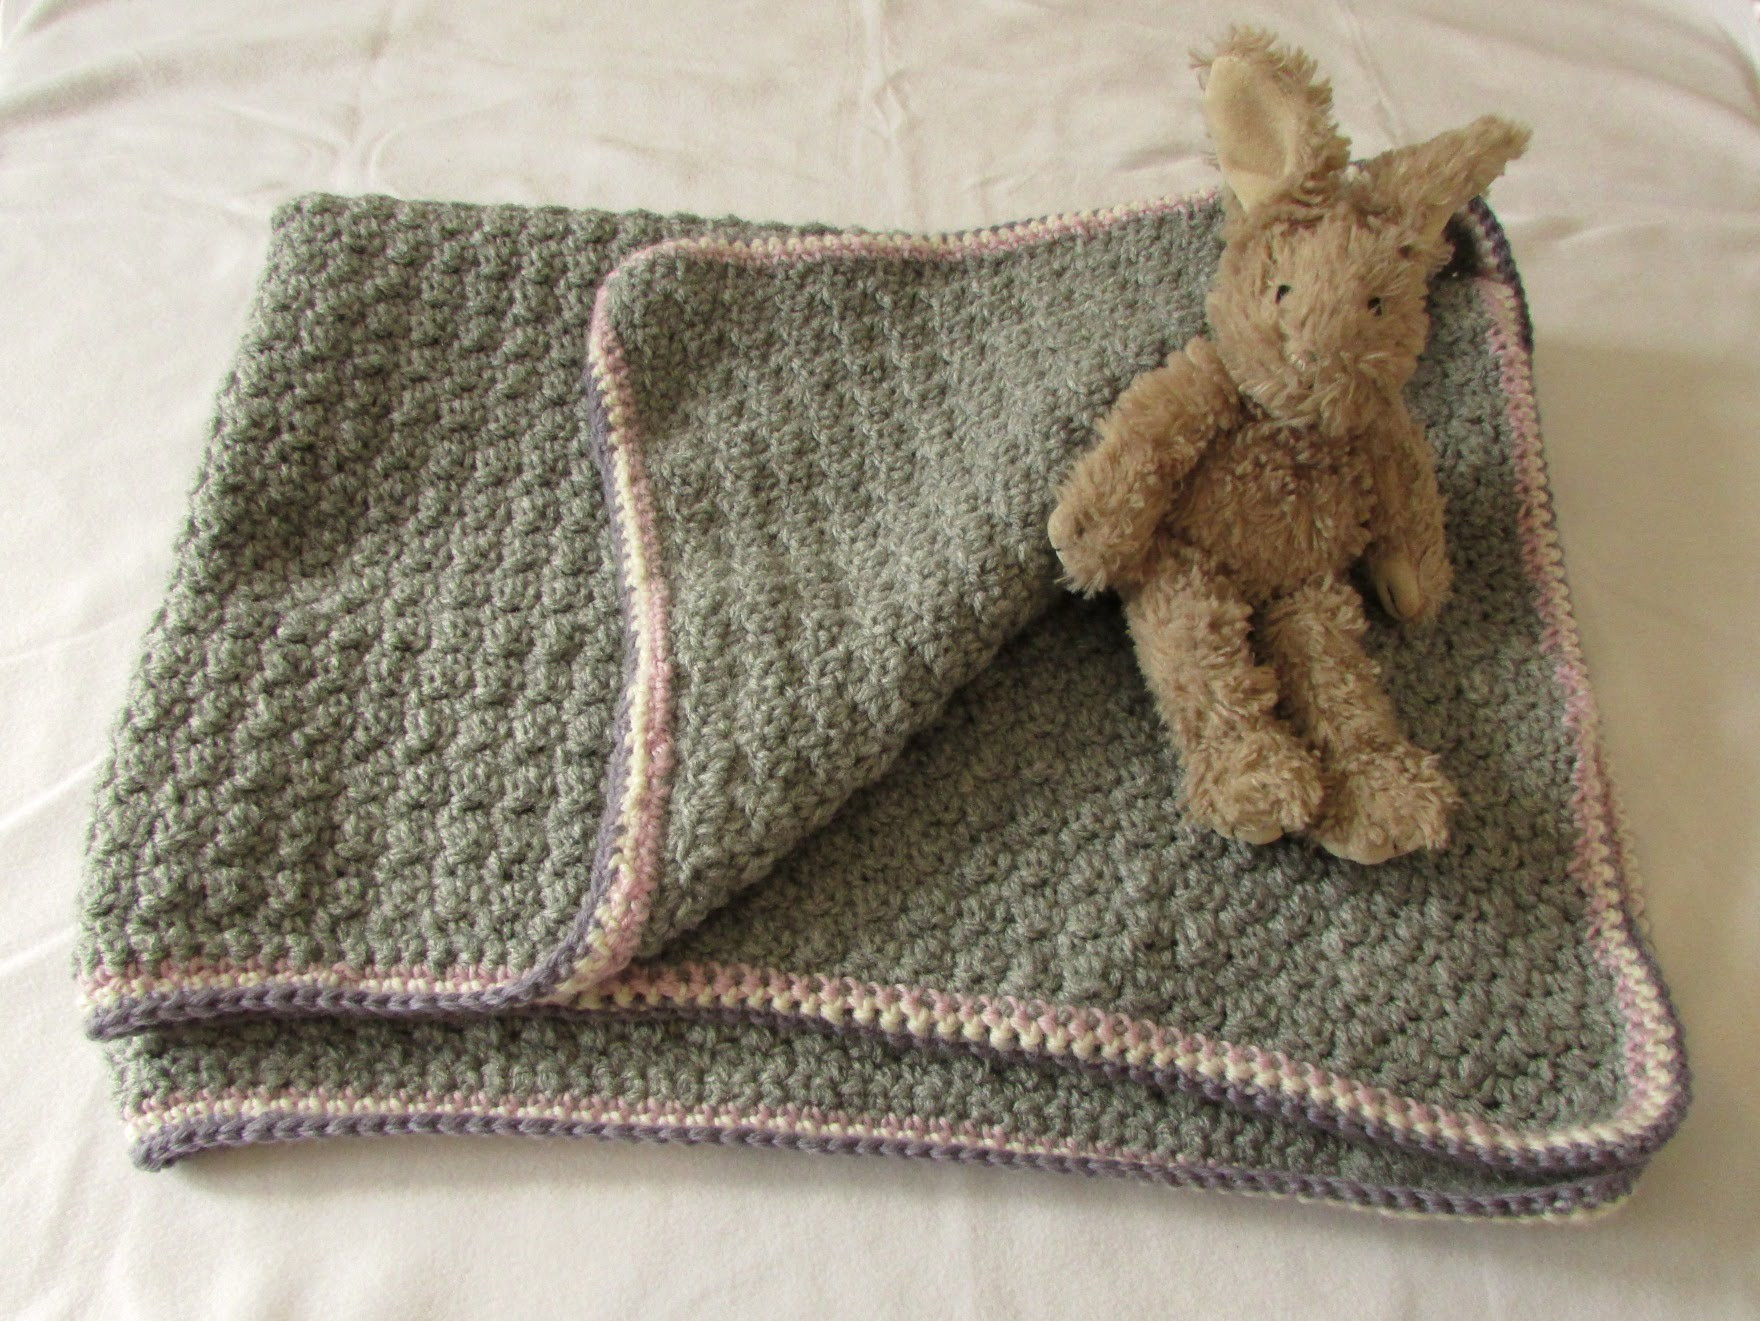 Unique Quick and Easy Crochet Baby Blanket Patterns Crochet Blanket Patterns Youtube Of Innovative 46 Images Crochet Blanket Patterns Youtube